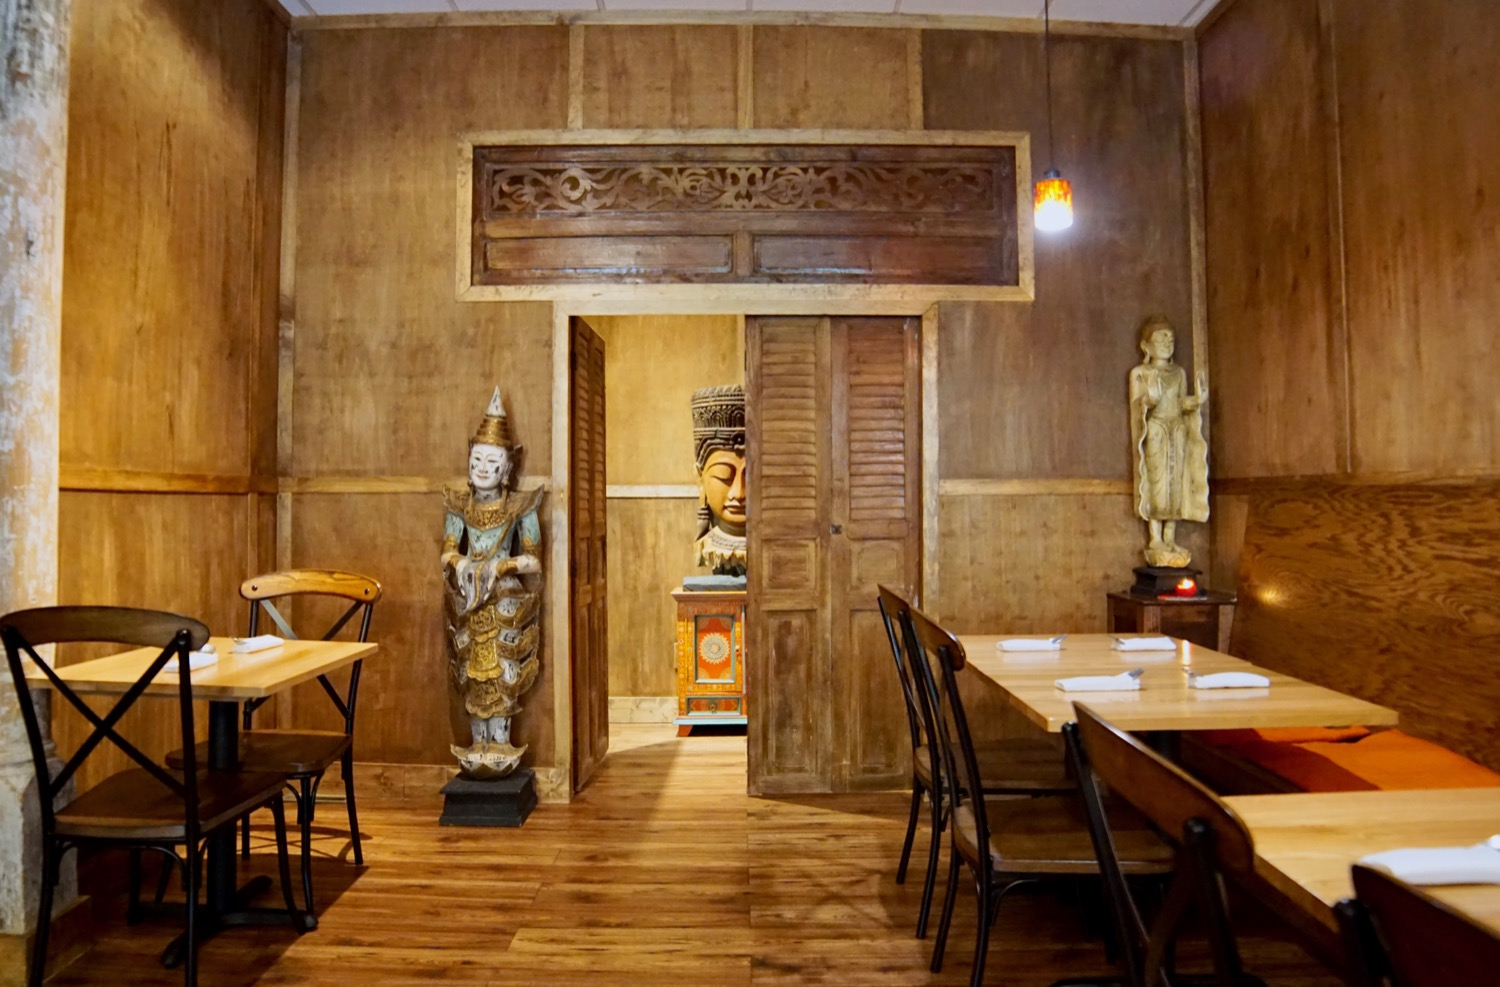 Buddha Barn's Thai cuisine is some of the best food you can have in Cincinnati. Its thoughtful preparations imbue time-honored recipes with incredible flavor. / ADDRESS: 6625 Gracely Drive (45233) / Image: Brian Planalp // Published: 9.15.17